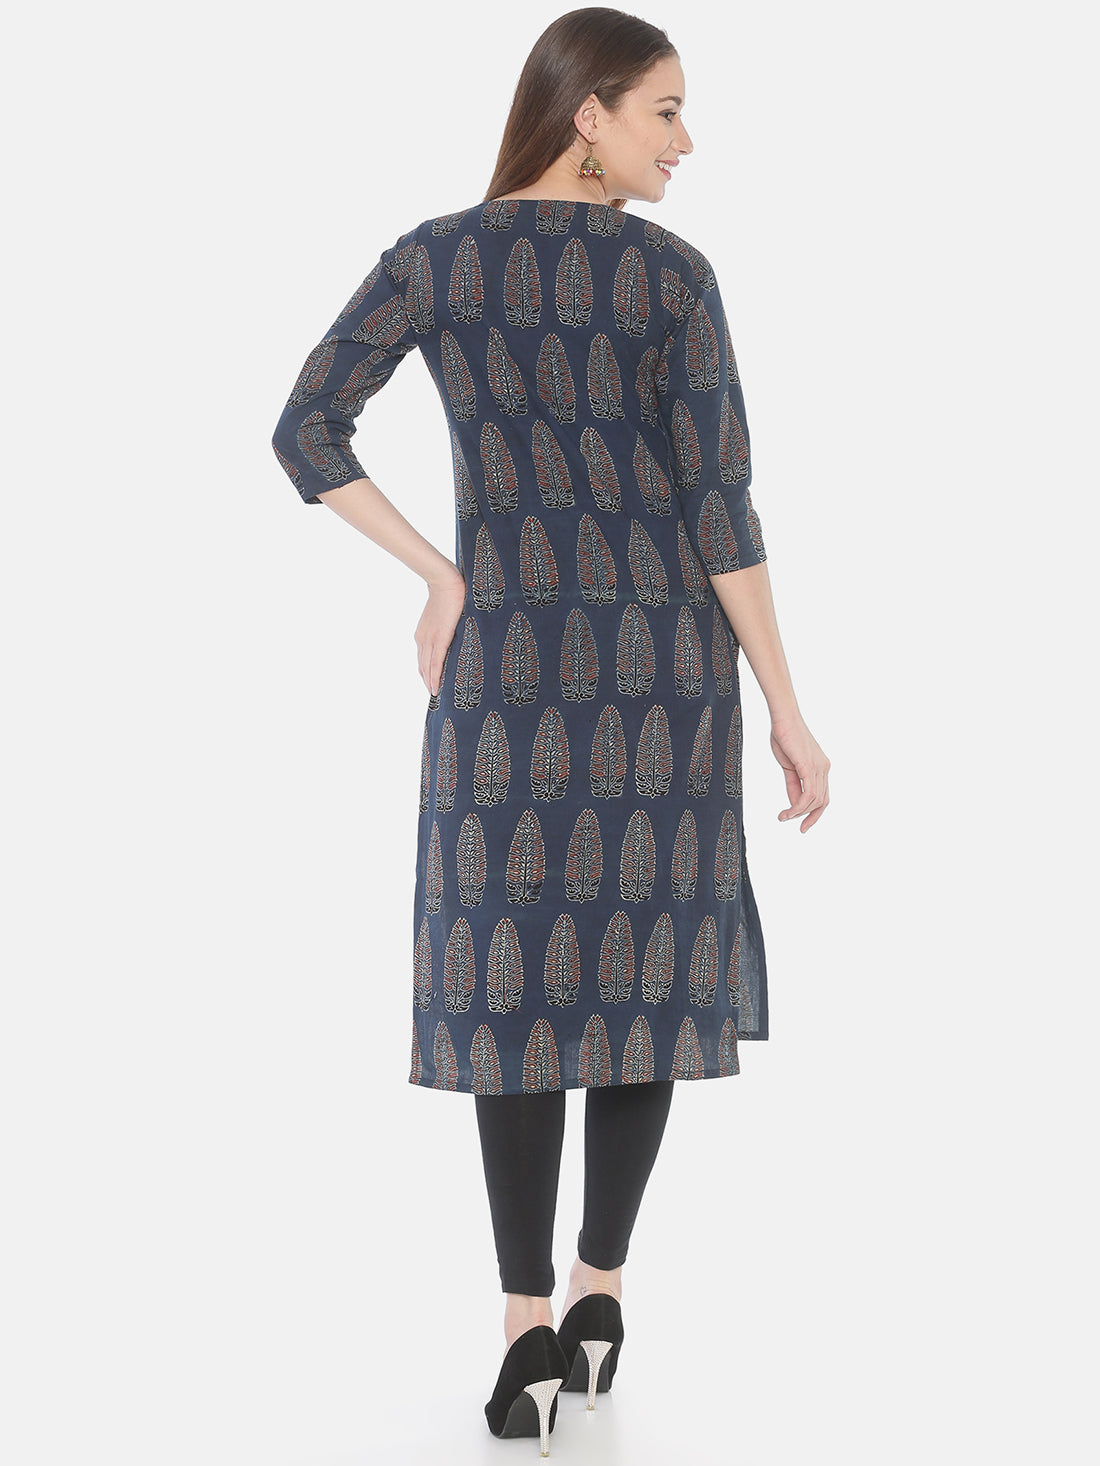 Indigo Ajrakh Hand Block Printed Naturally Dyed Pure Cotton Kurti